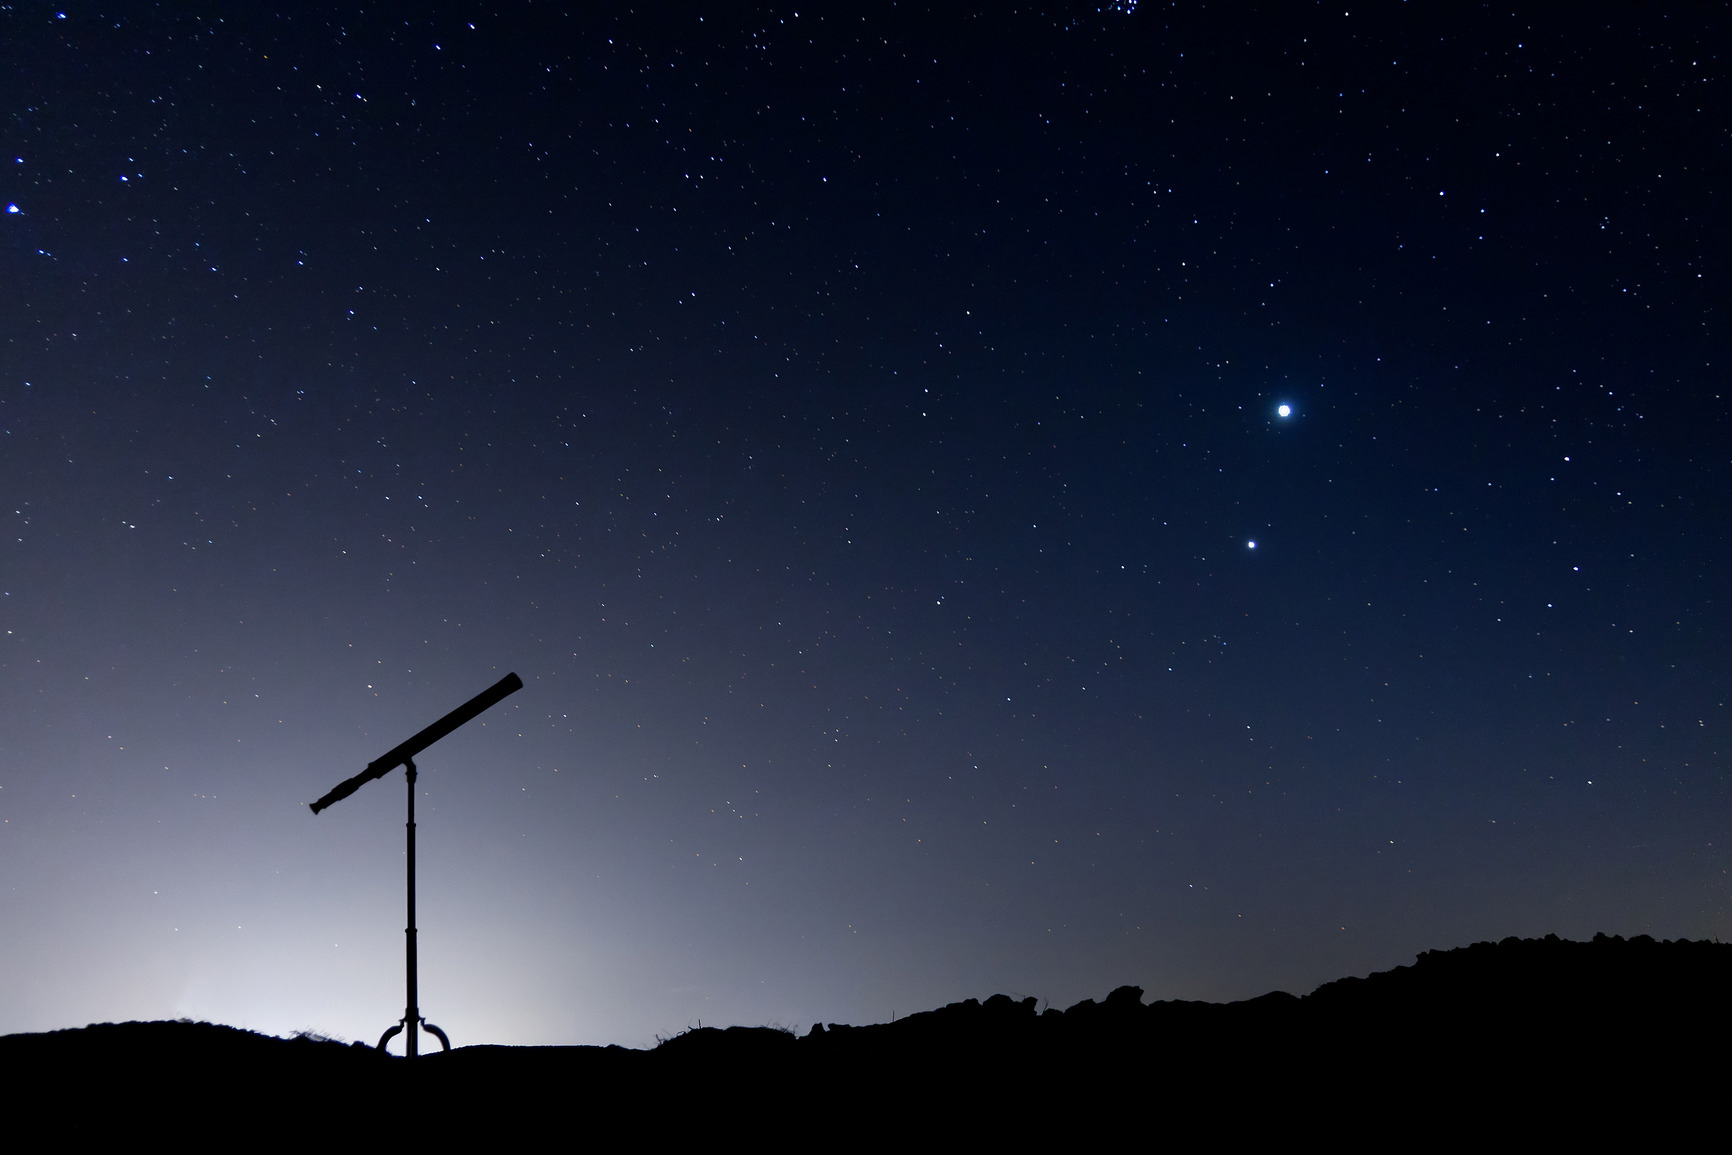 photodune-2932113-night-shot-with-a-silhouette-of-a-telescope-m copy